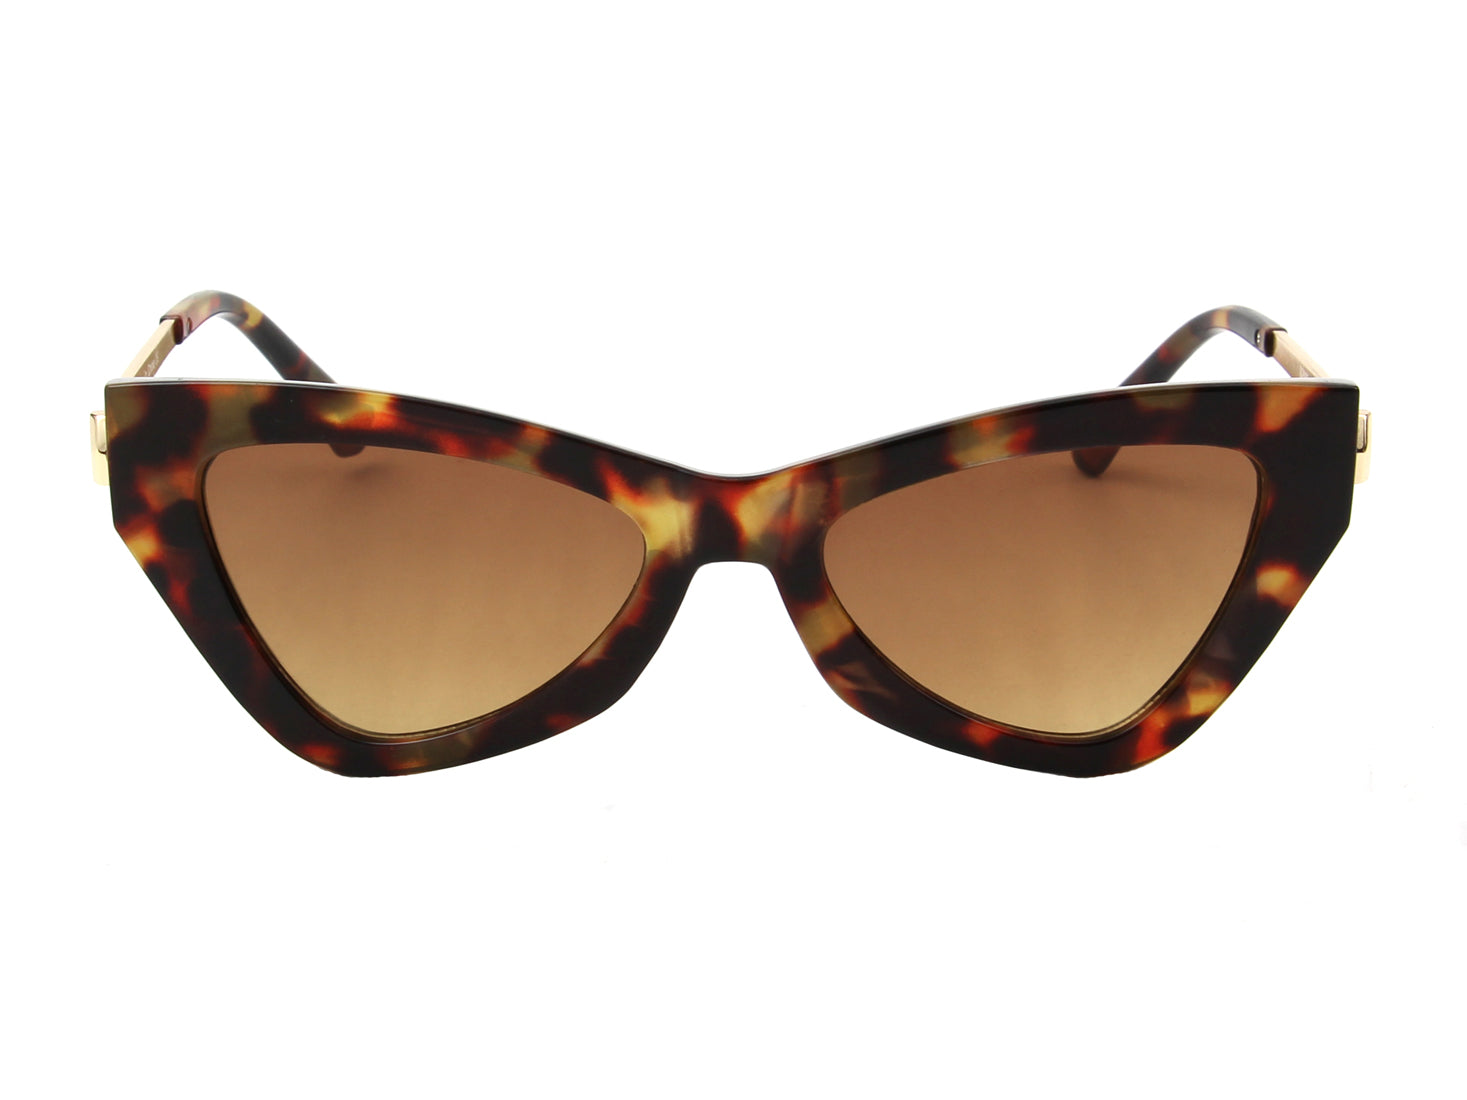 S2099 - Women High Pointed Cat Eye Fashion Sunglasses